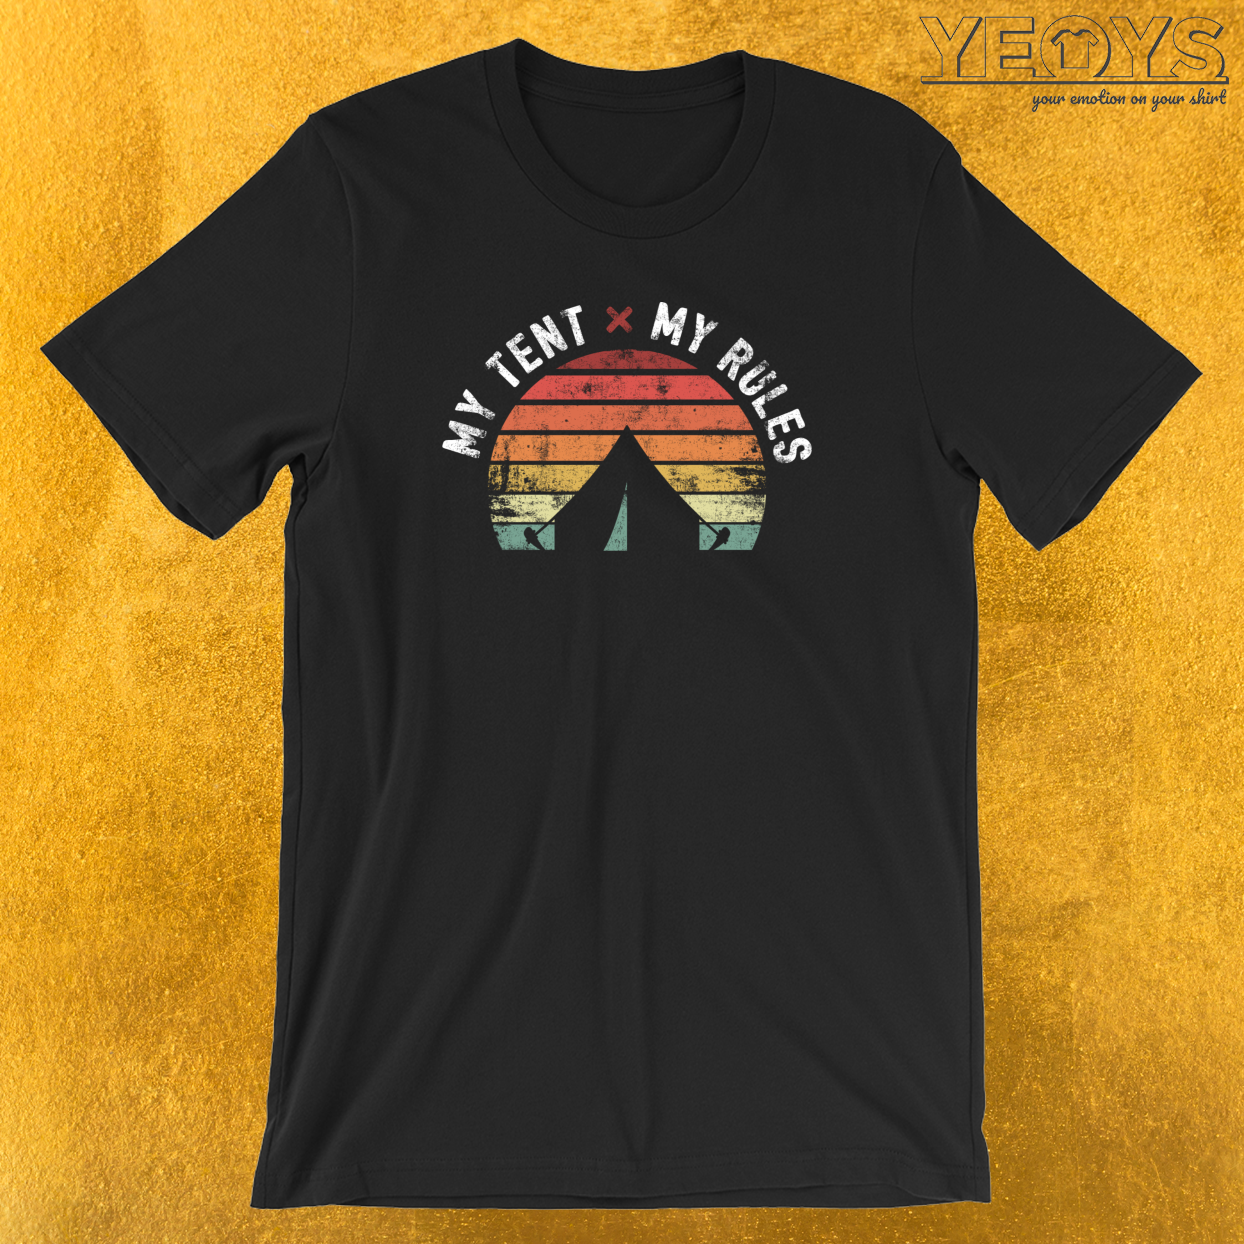 My Tent My Rules Retro Vintage T-Shirt